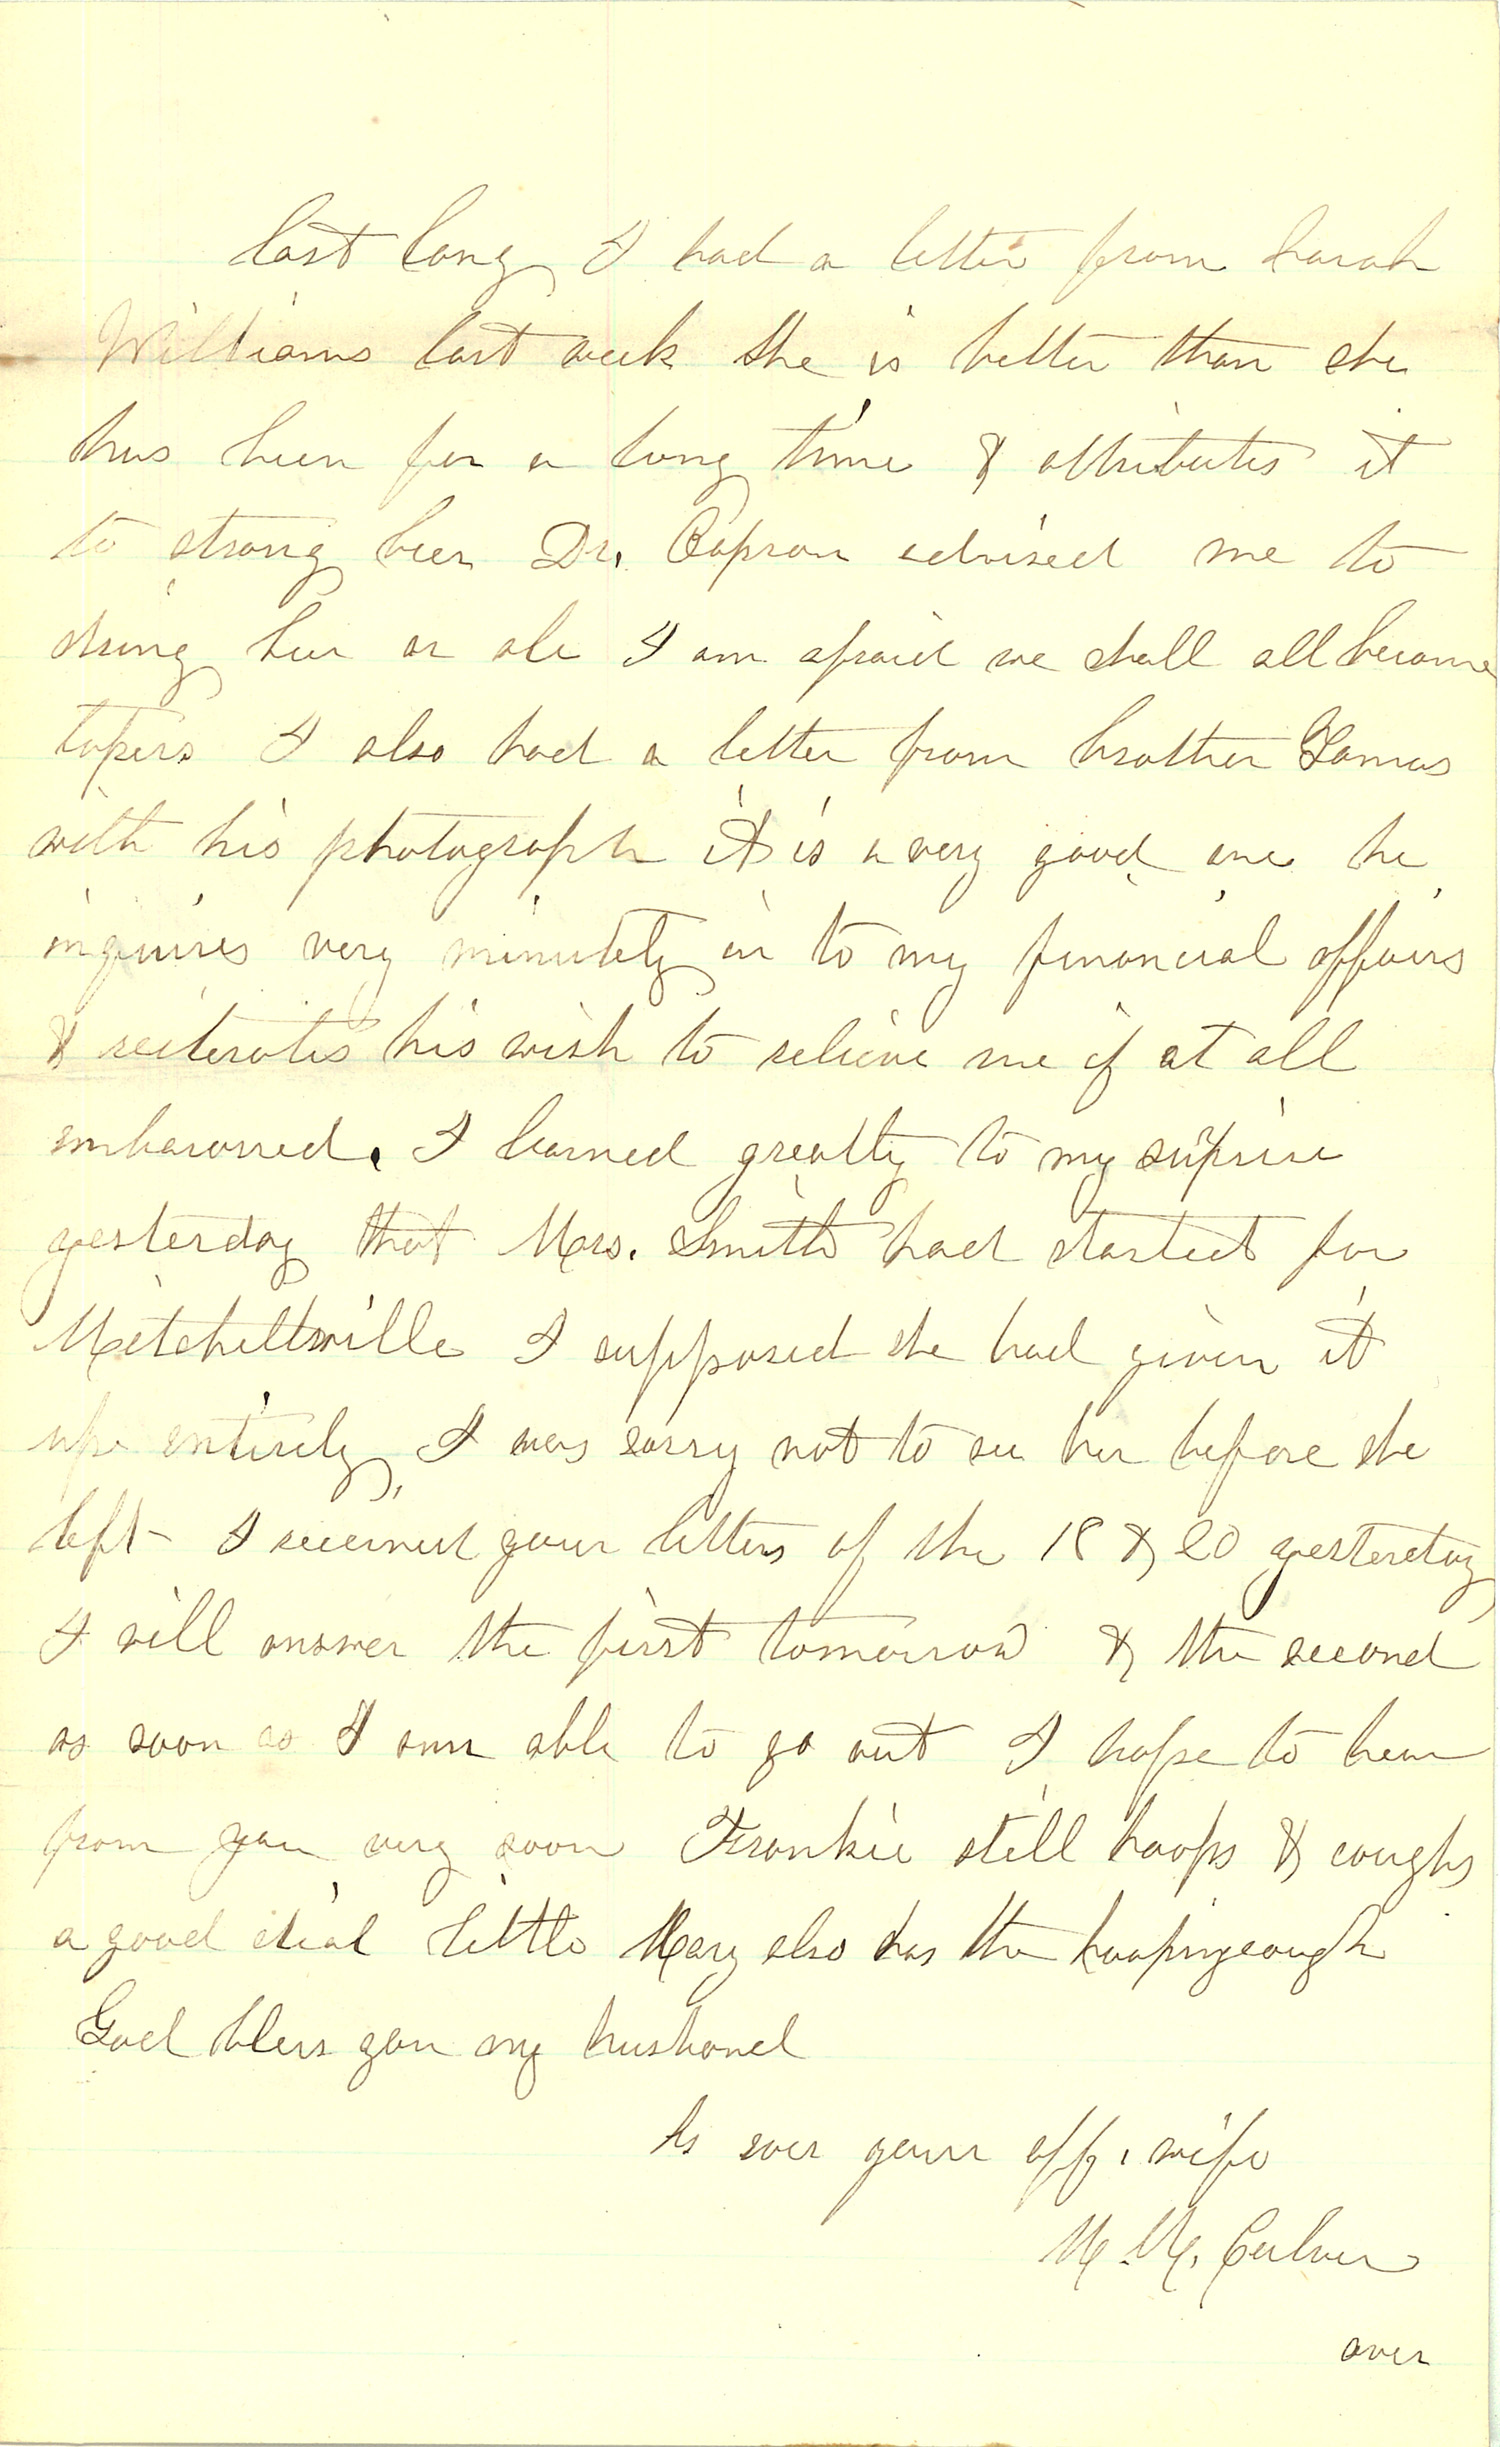 Joseph Culver Letter, January 23, 1863, Page 3